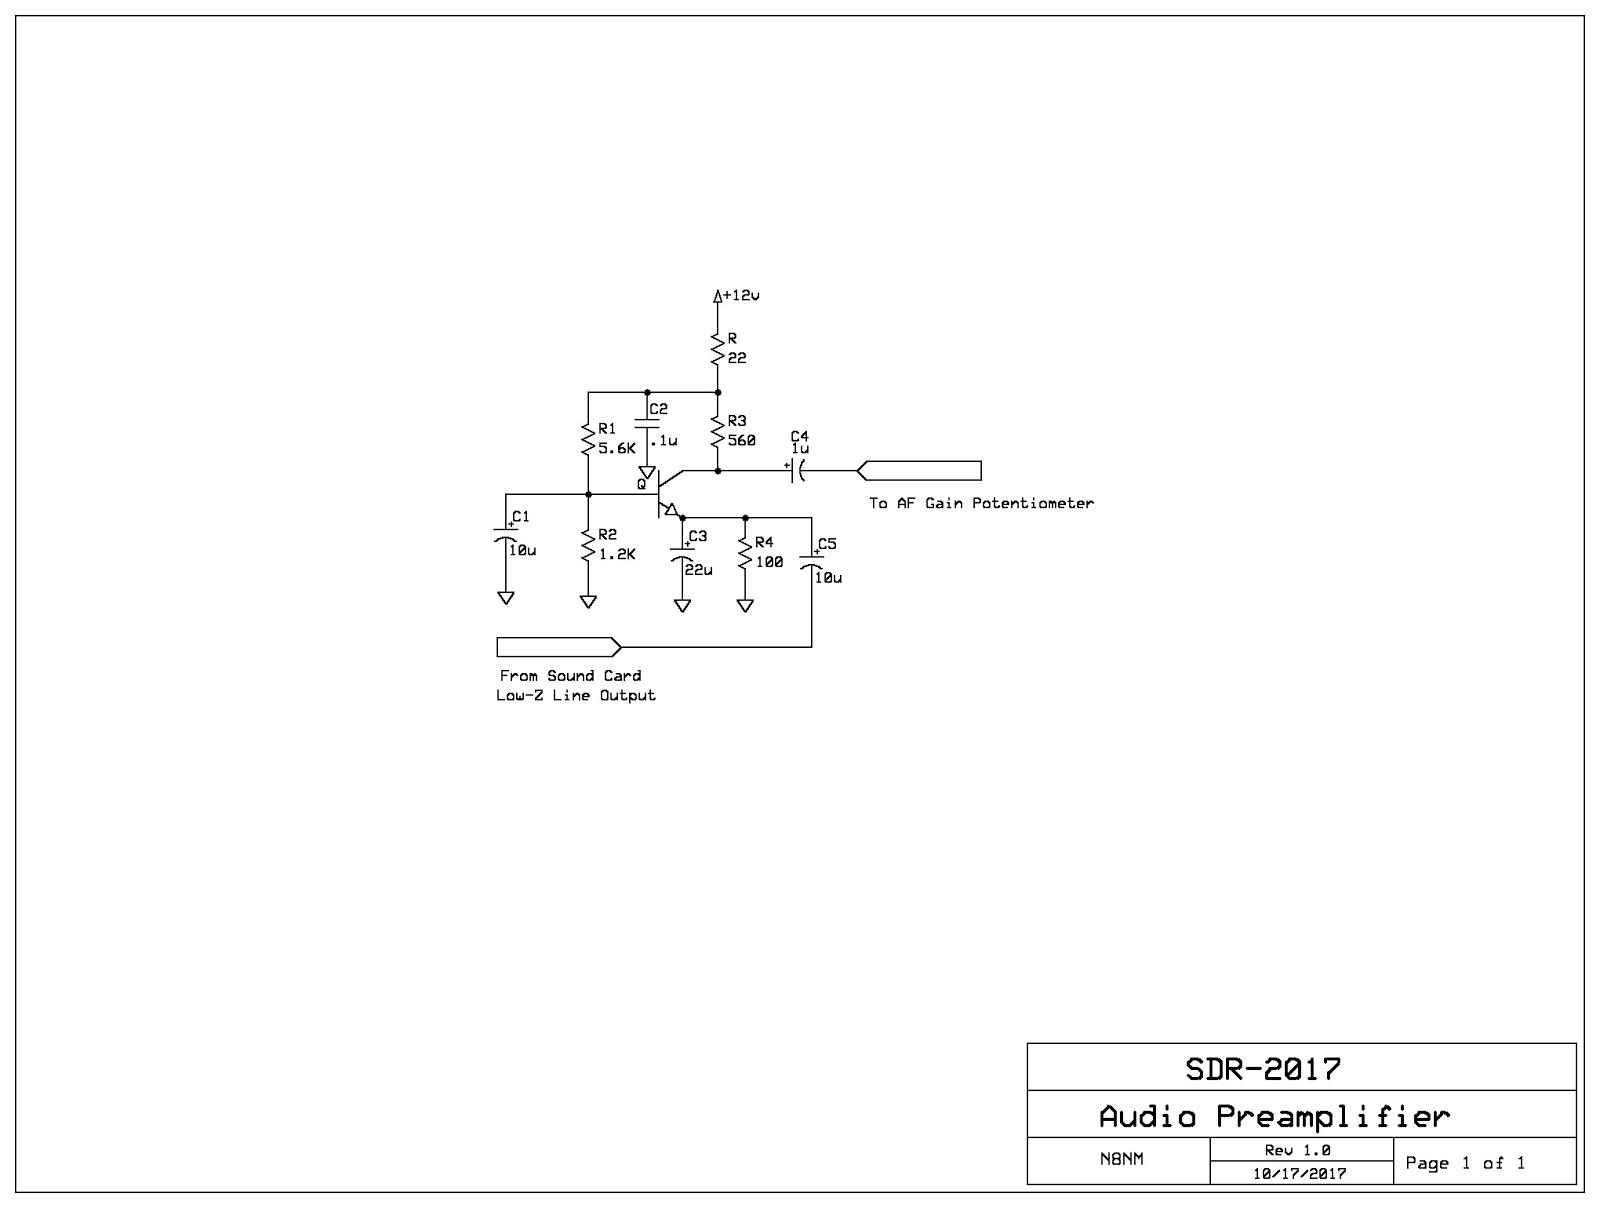 Steves Eclectic Radio Blog 2017 Simple Amplifier With C945mje340 And Tip3055 When It Comes To Designing A Common Base I Tend Approach In Much The Same Way As Would Emitter Circuit